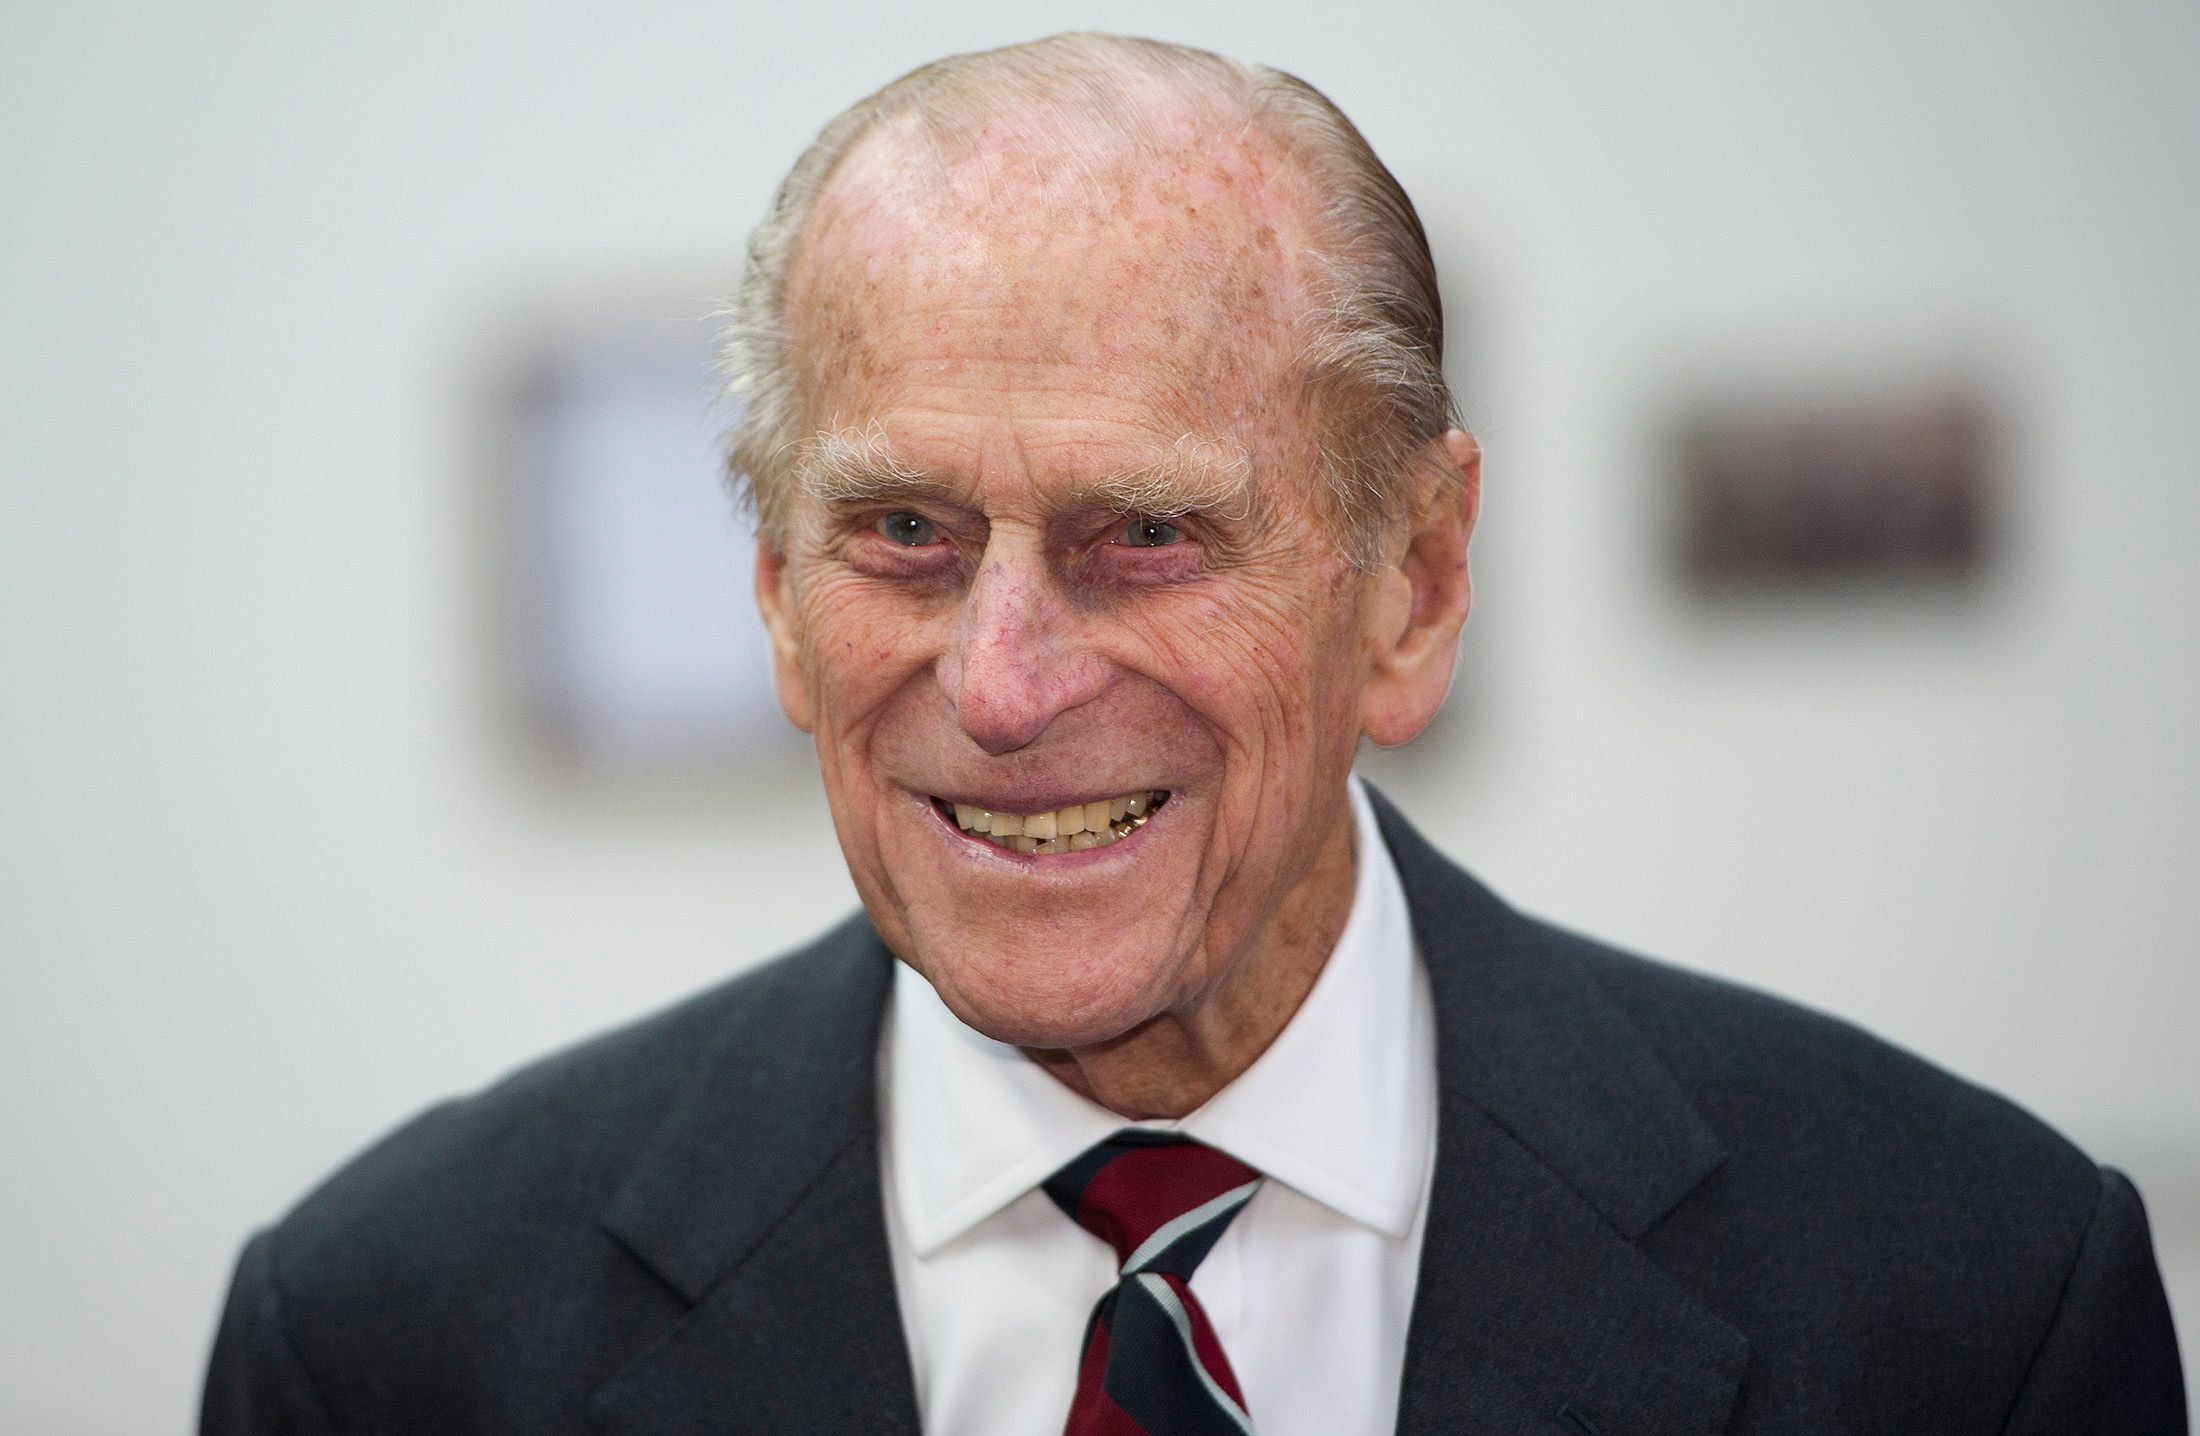 The Duke Of Edinburgh at the opening of the 'First World War In The Air' exhibition at the RAF museum in Hendon on December 02, 2014 | Photo: Getty Images